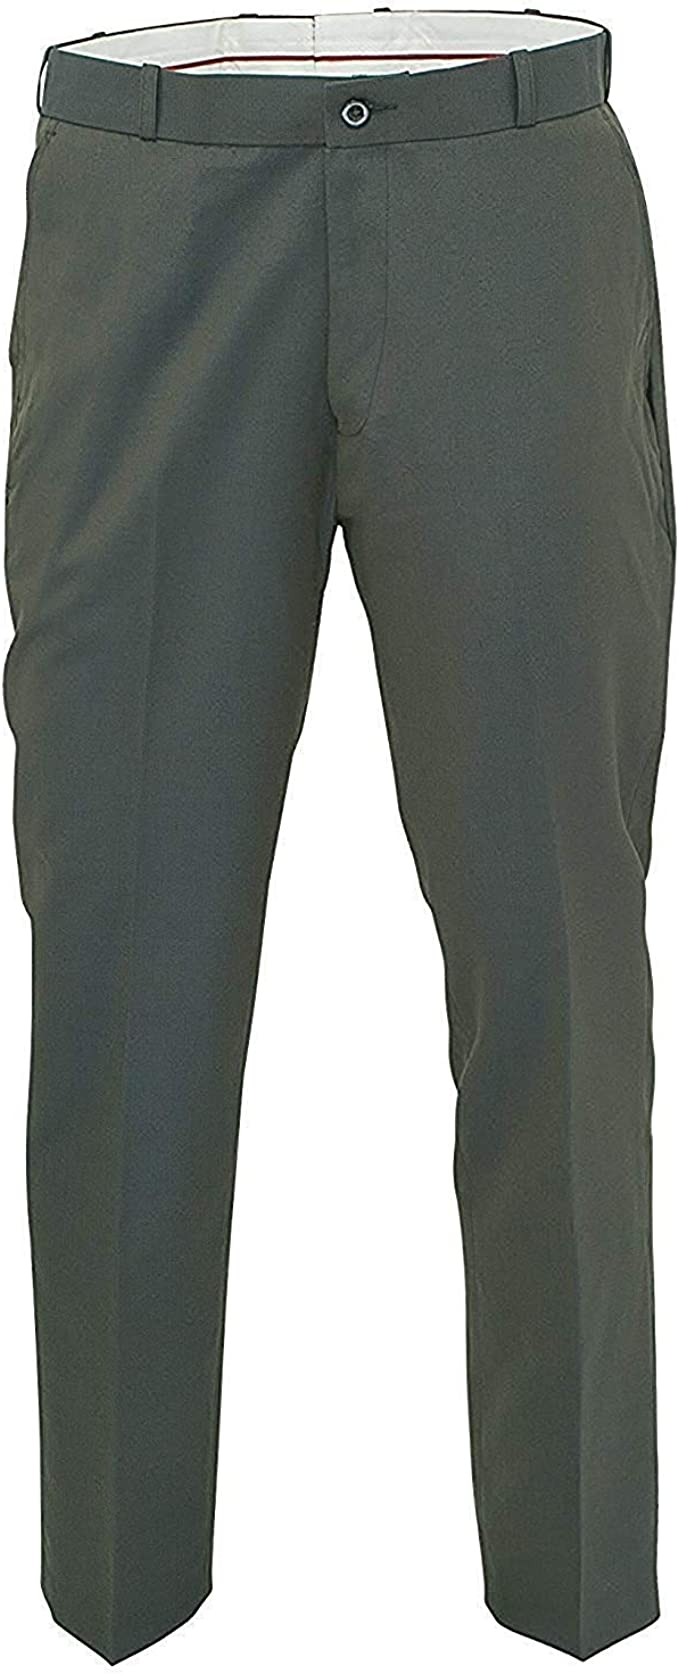 60s 70s Men's Clothing UK | Shirts, Trousers, Shoes Relco Mens Classic Green Tonic Stay Press Trousers £39.99 AT vintagedancer.com